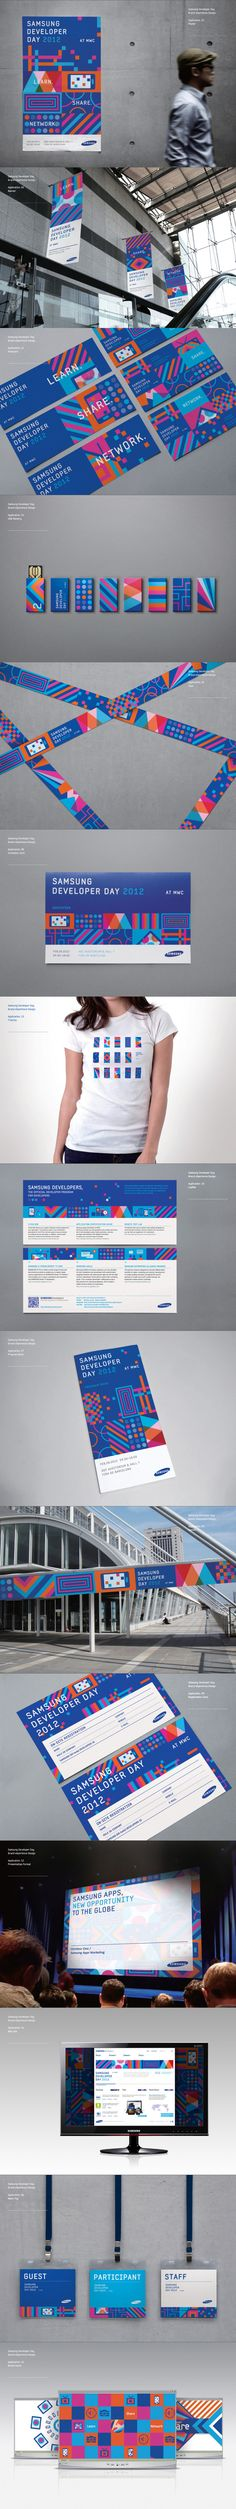 Samsung Developers Brand eXperience Design by Plus X , via Behance